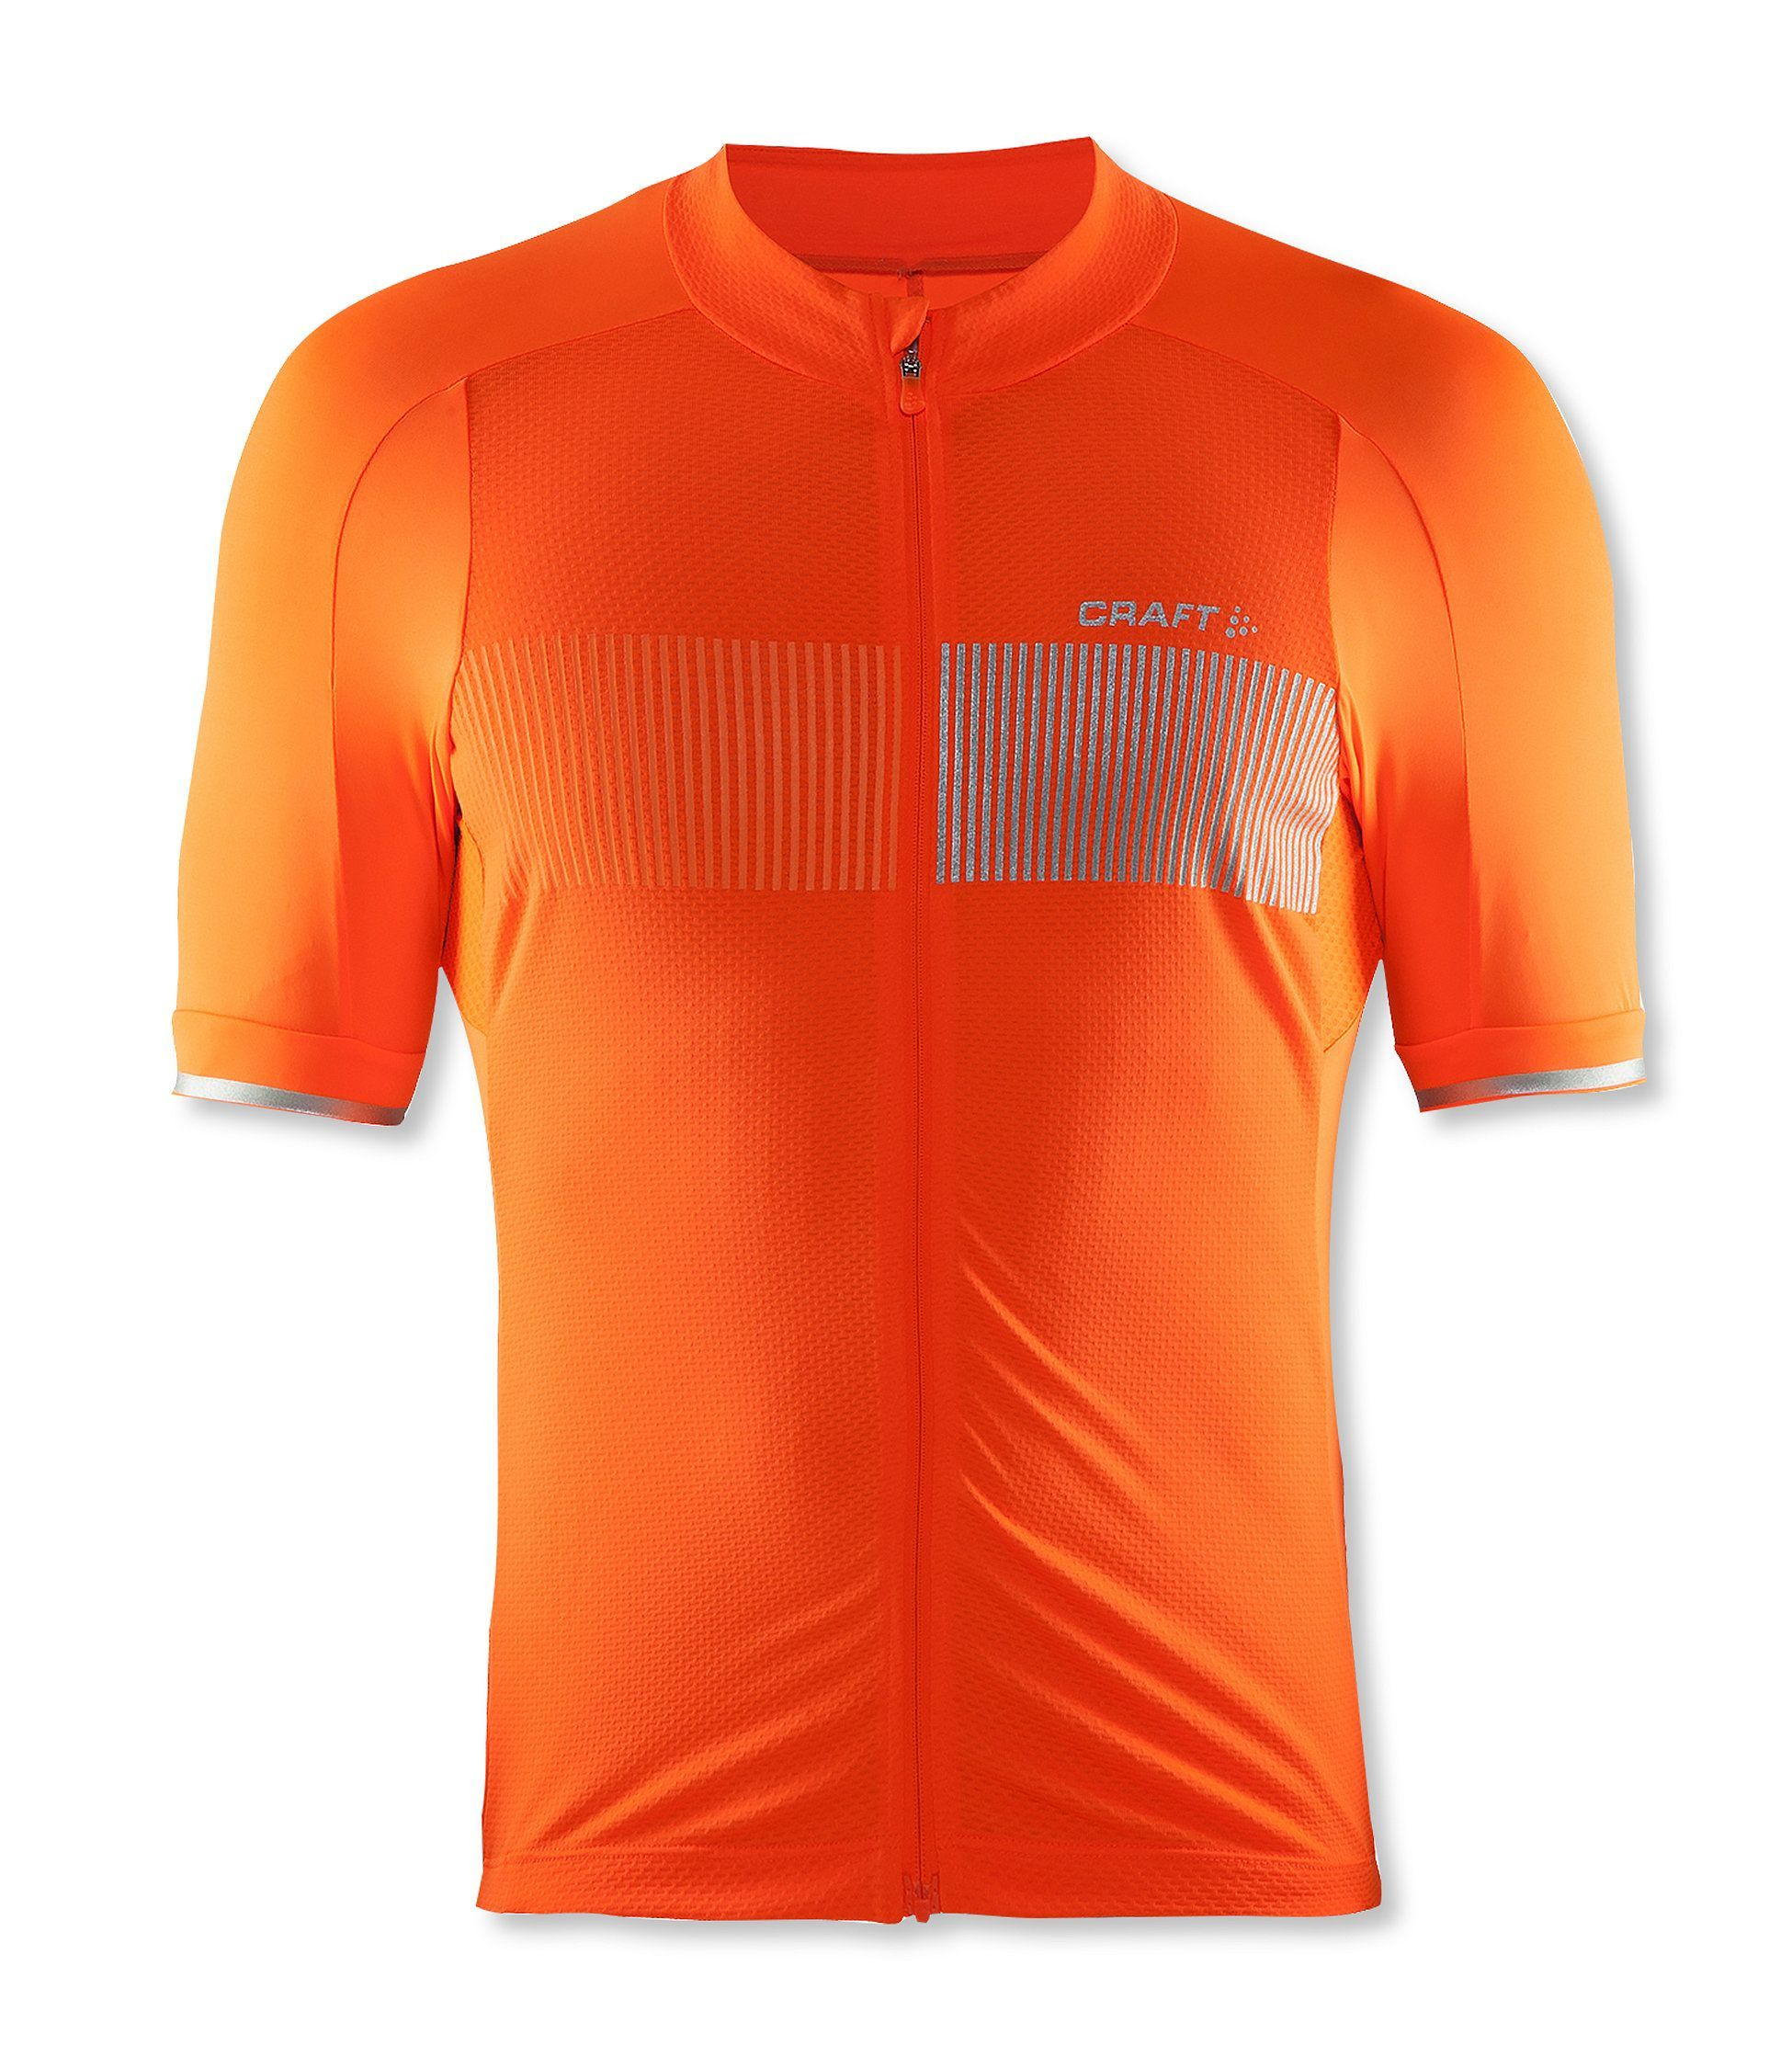 Craft Verve Glow Bike Jersey Training Clothes Cycling Outfit